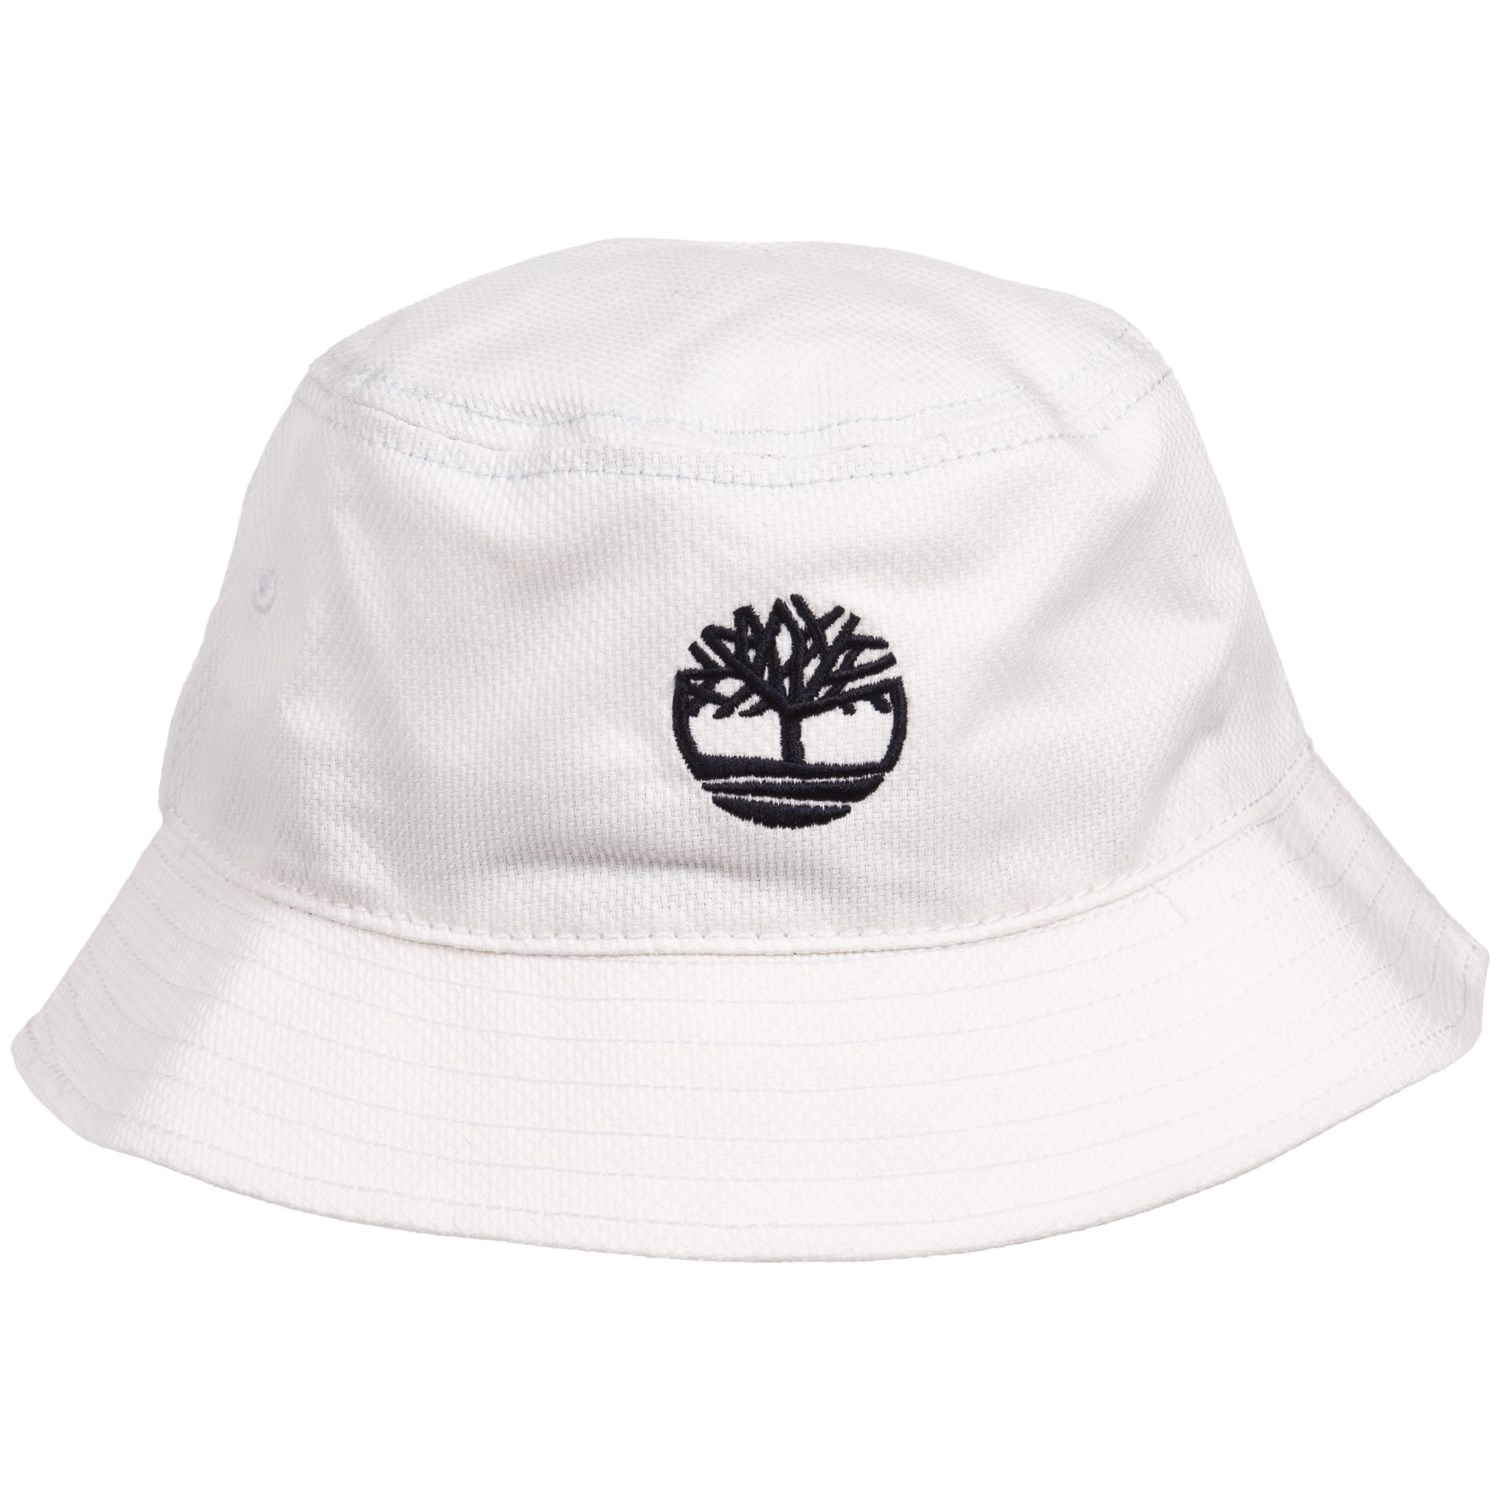 f93a942e7 Timberland Bucket Hat with Tree Logo (For Men)